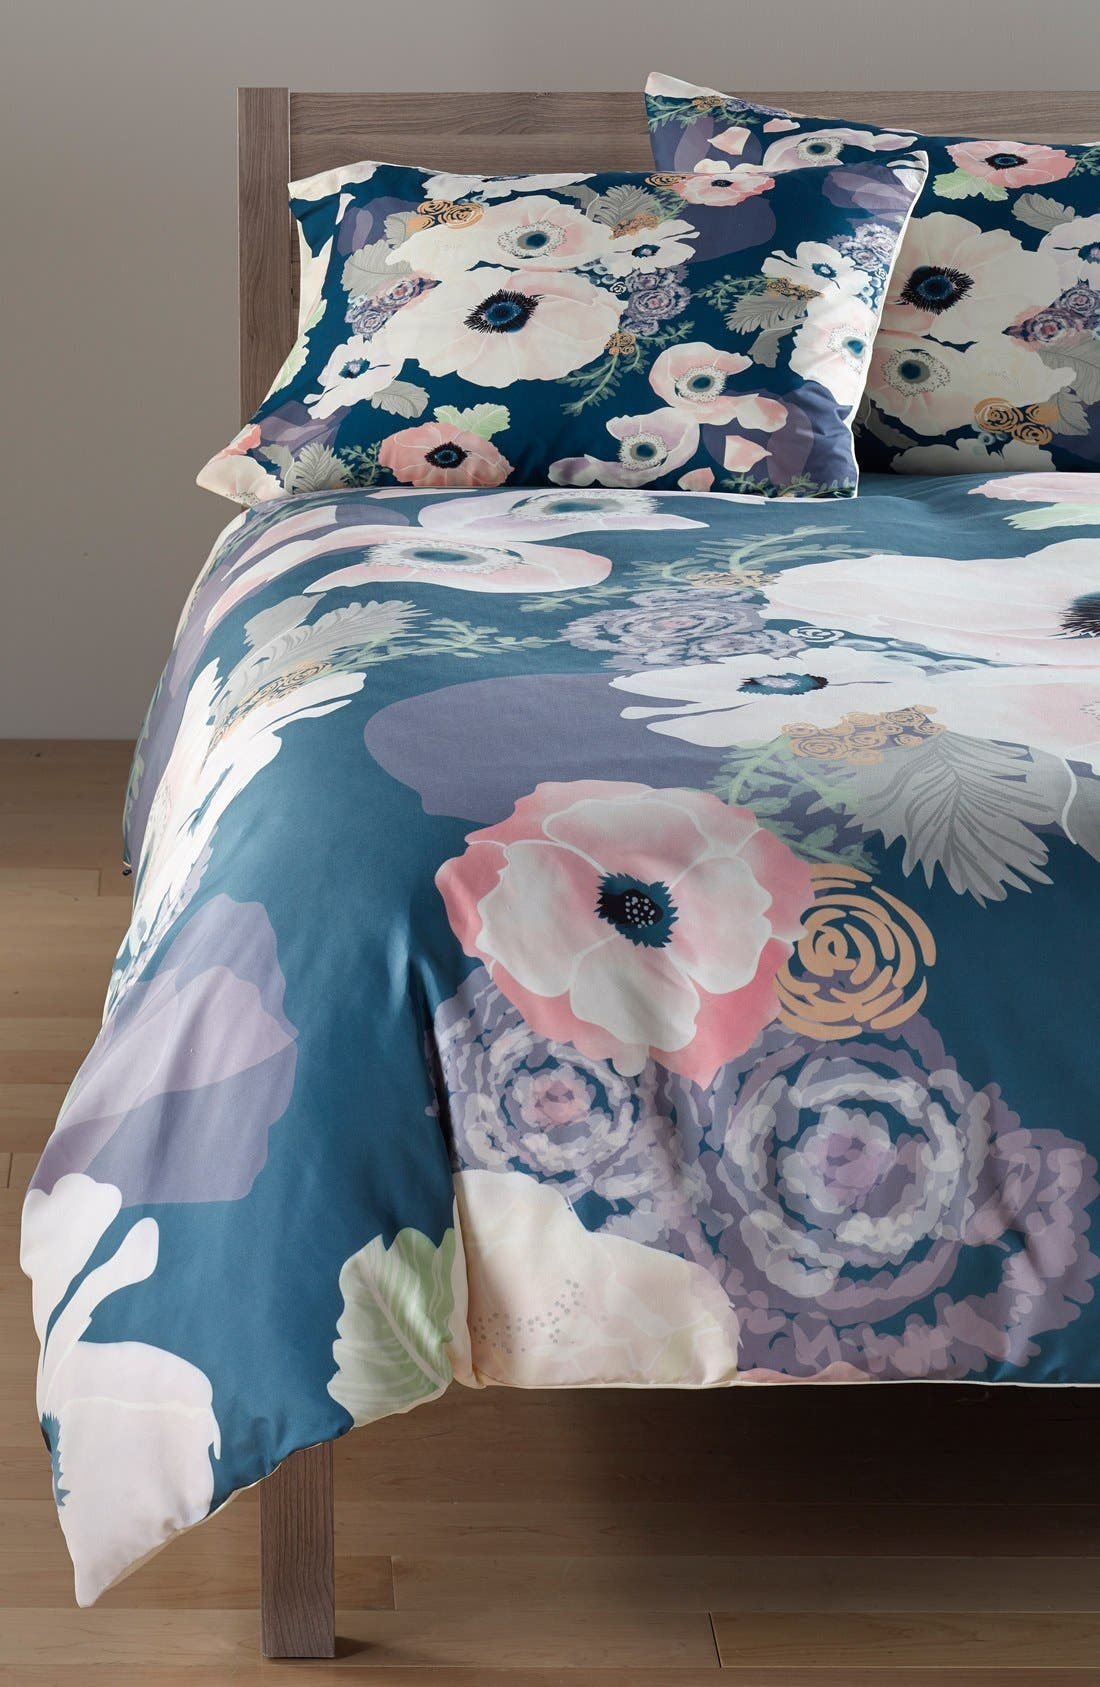 DENY DESIGNS Khristian Howell Duvet Cover & Sham